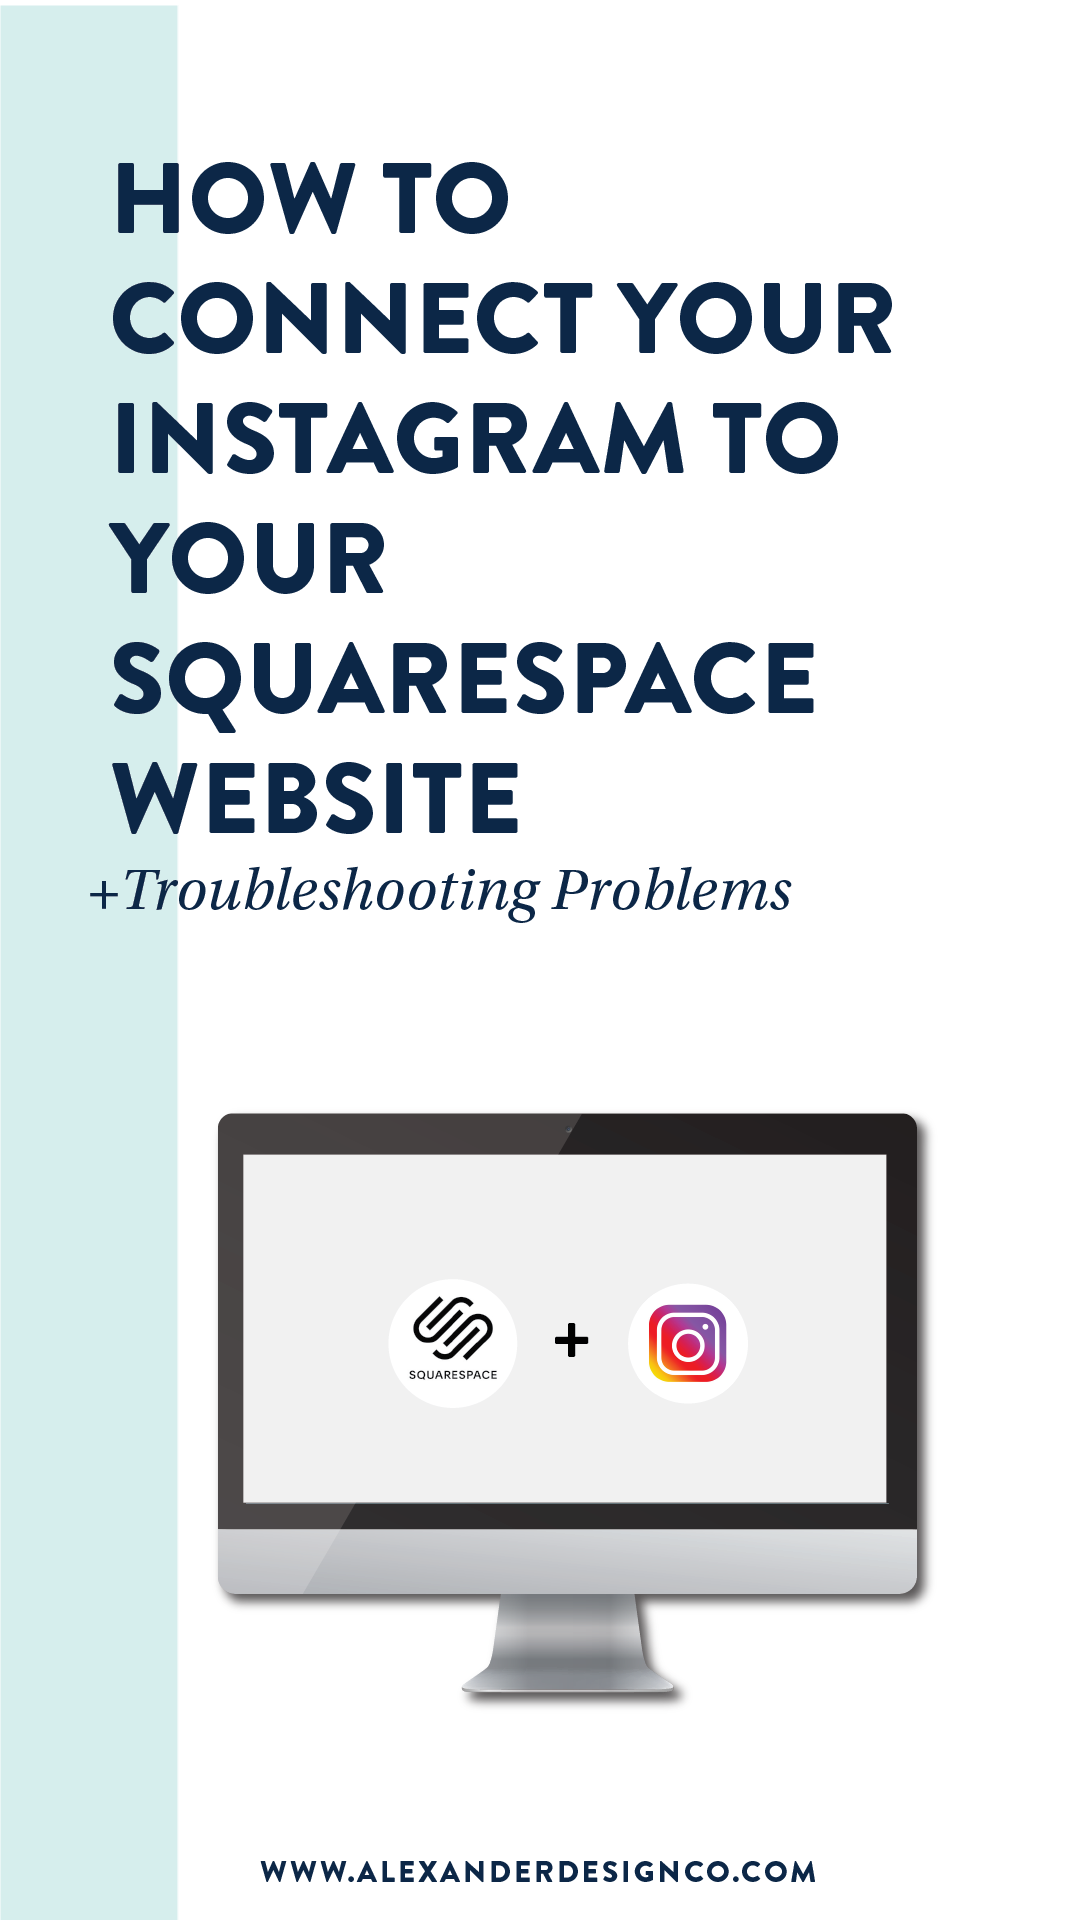 How to connect your Instagram to your Squarespace site Alexander Design Co.png